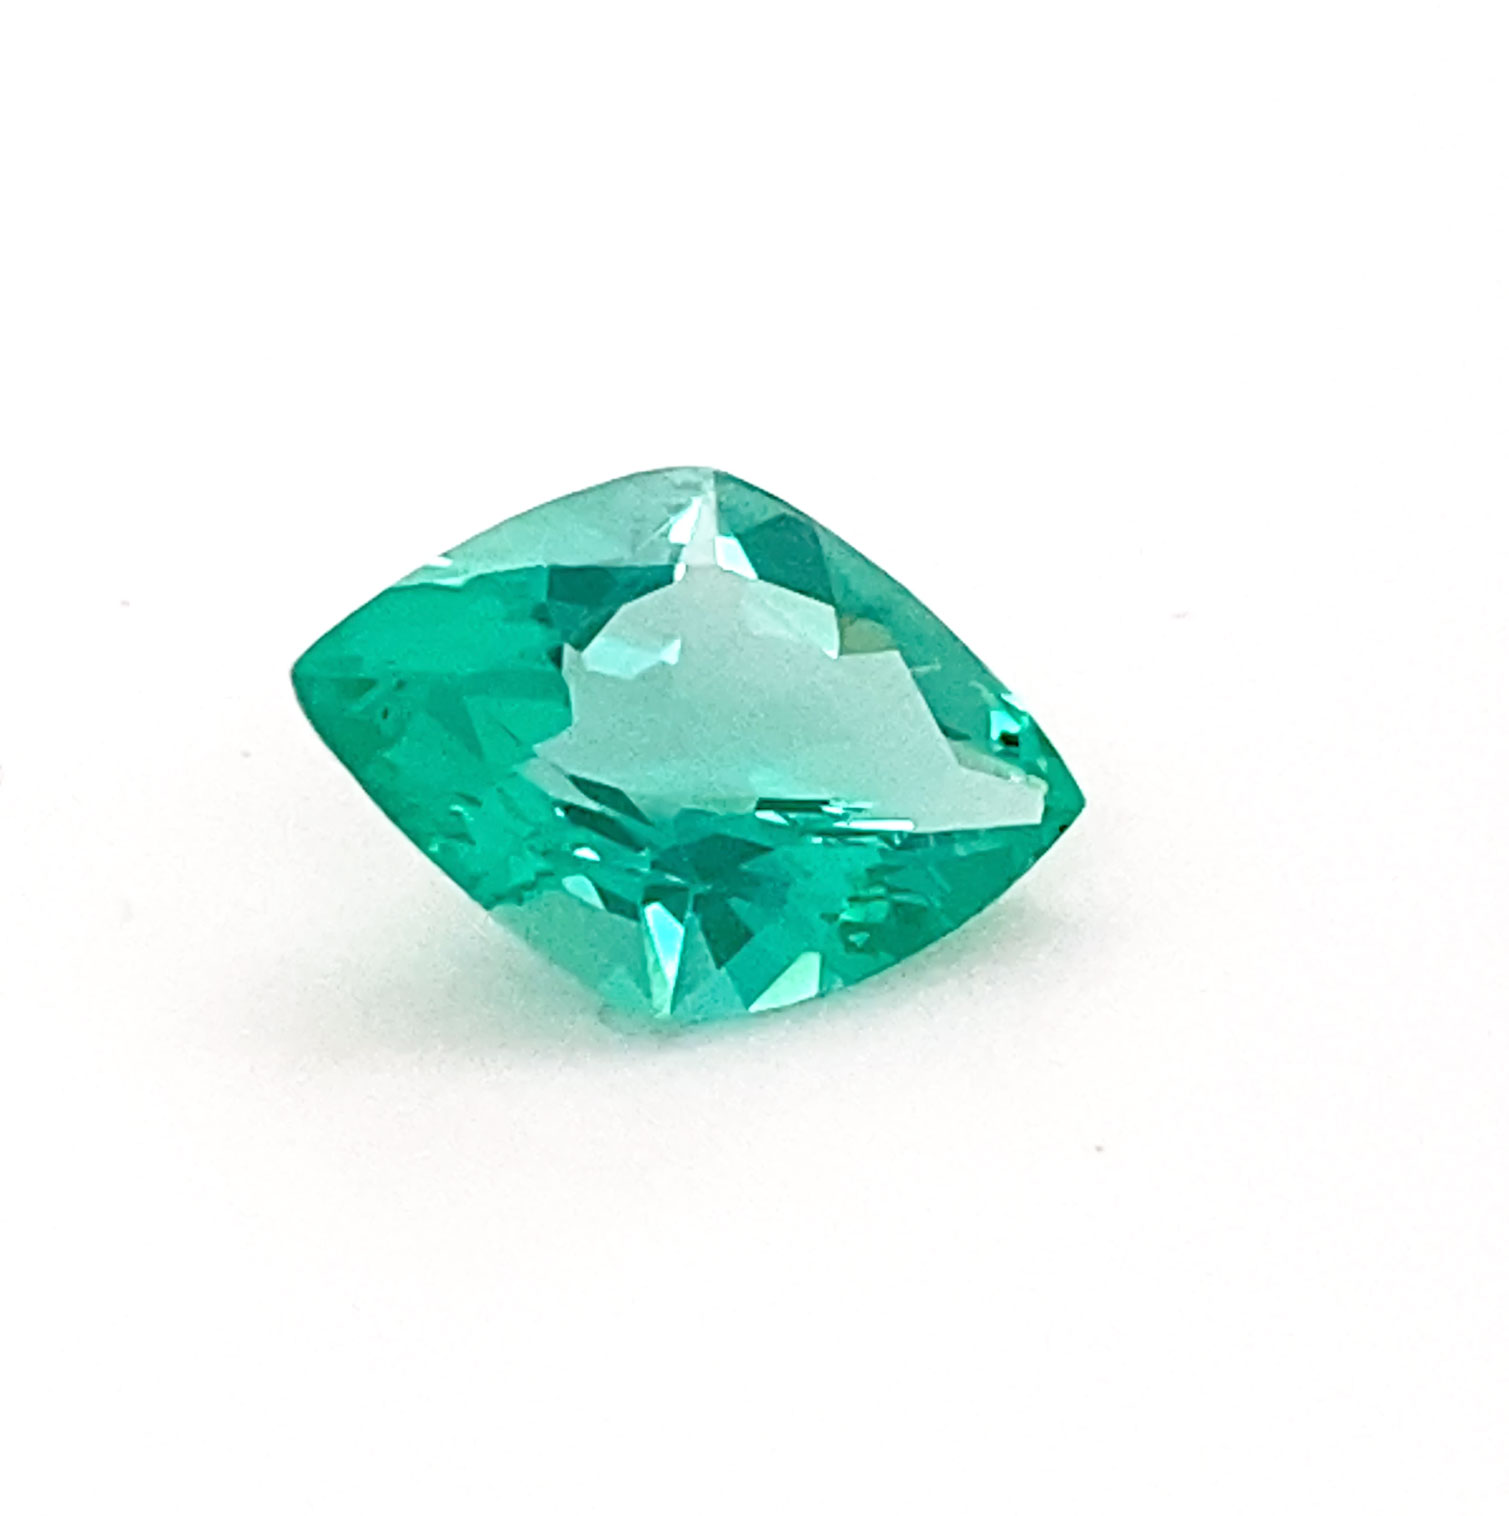 A rare kite-shaped Emerald of exceptional clarity and crisp green